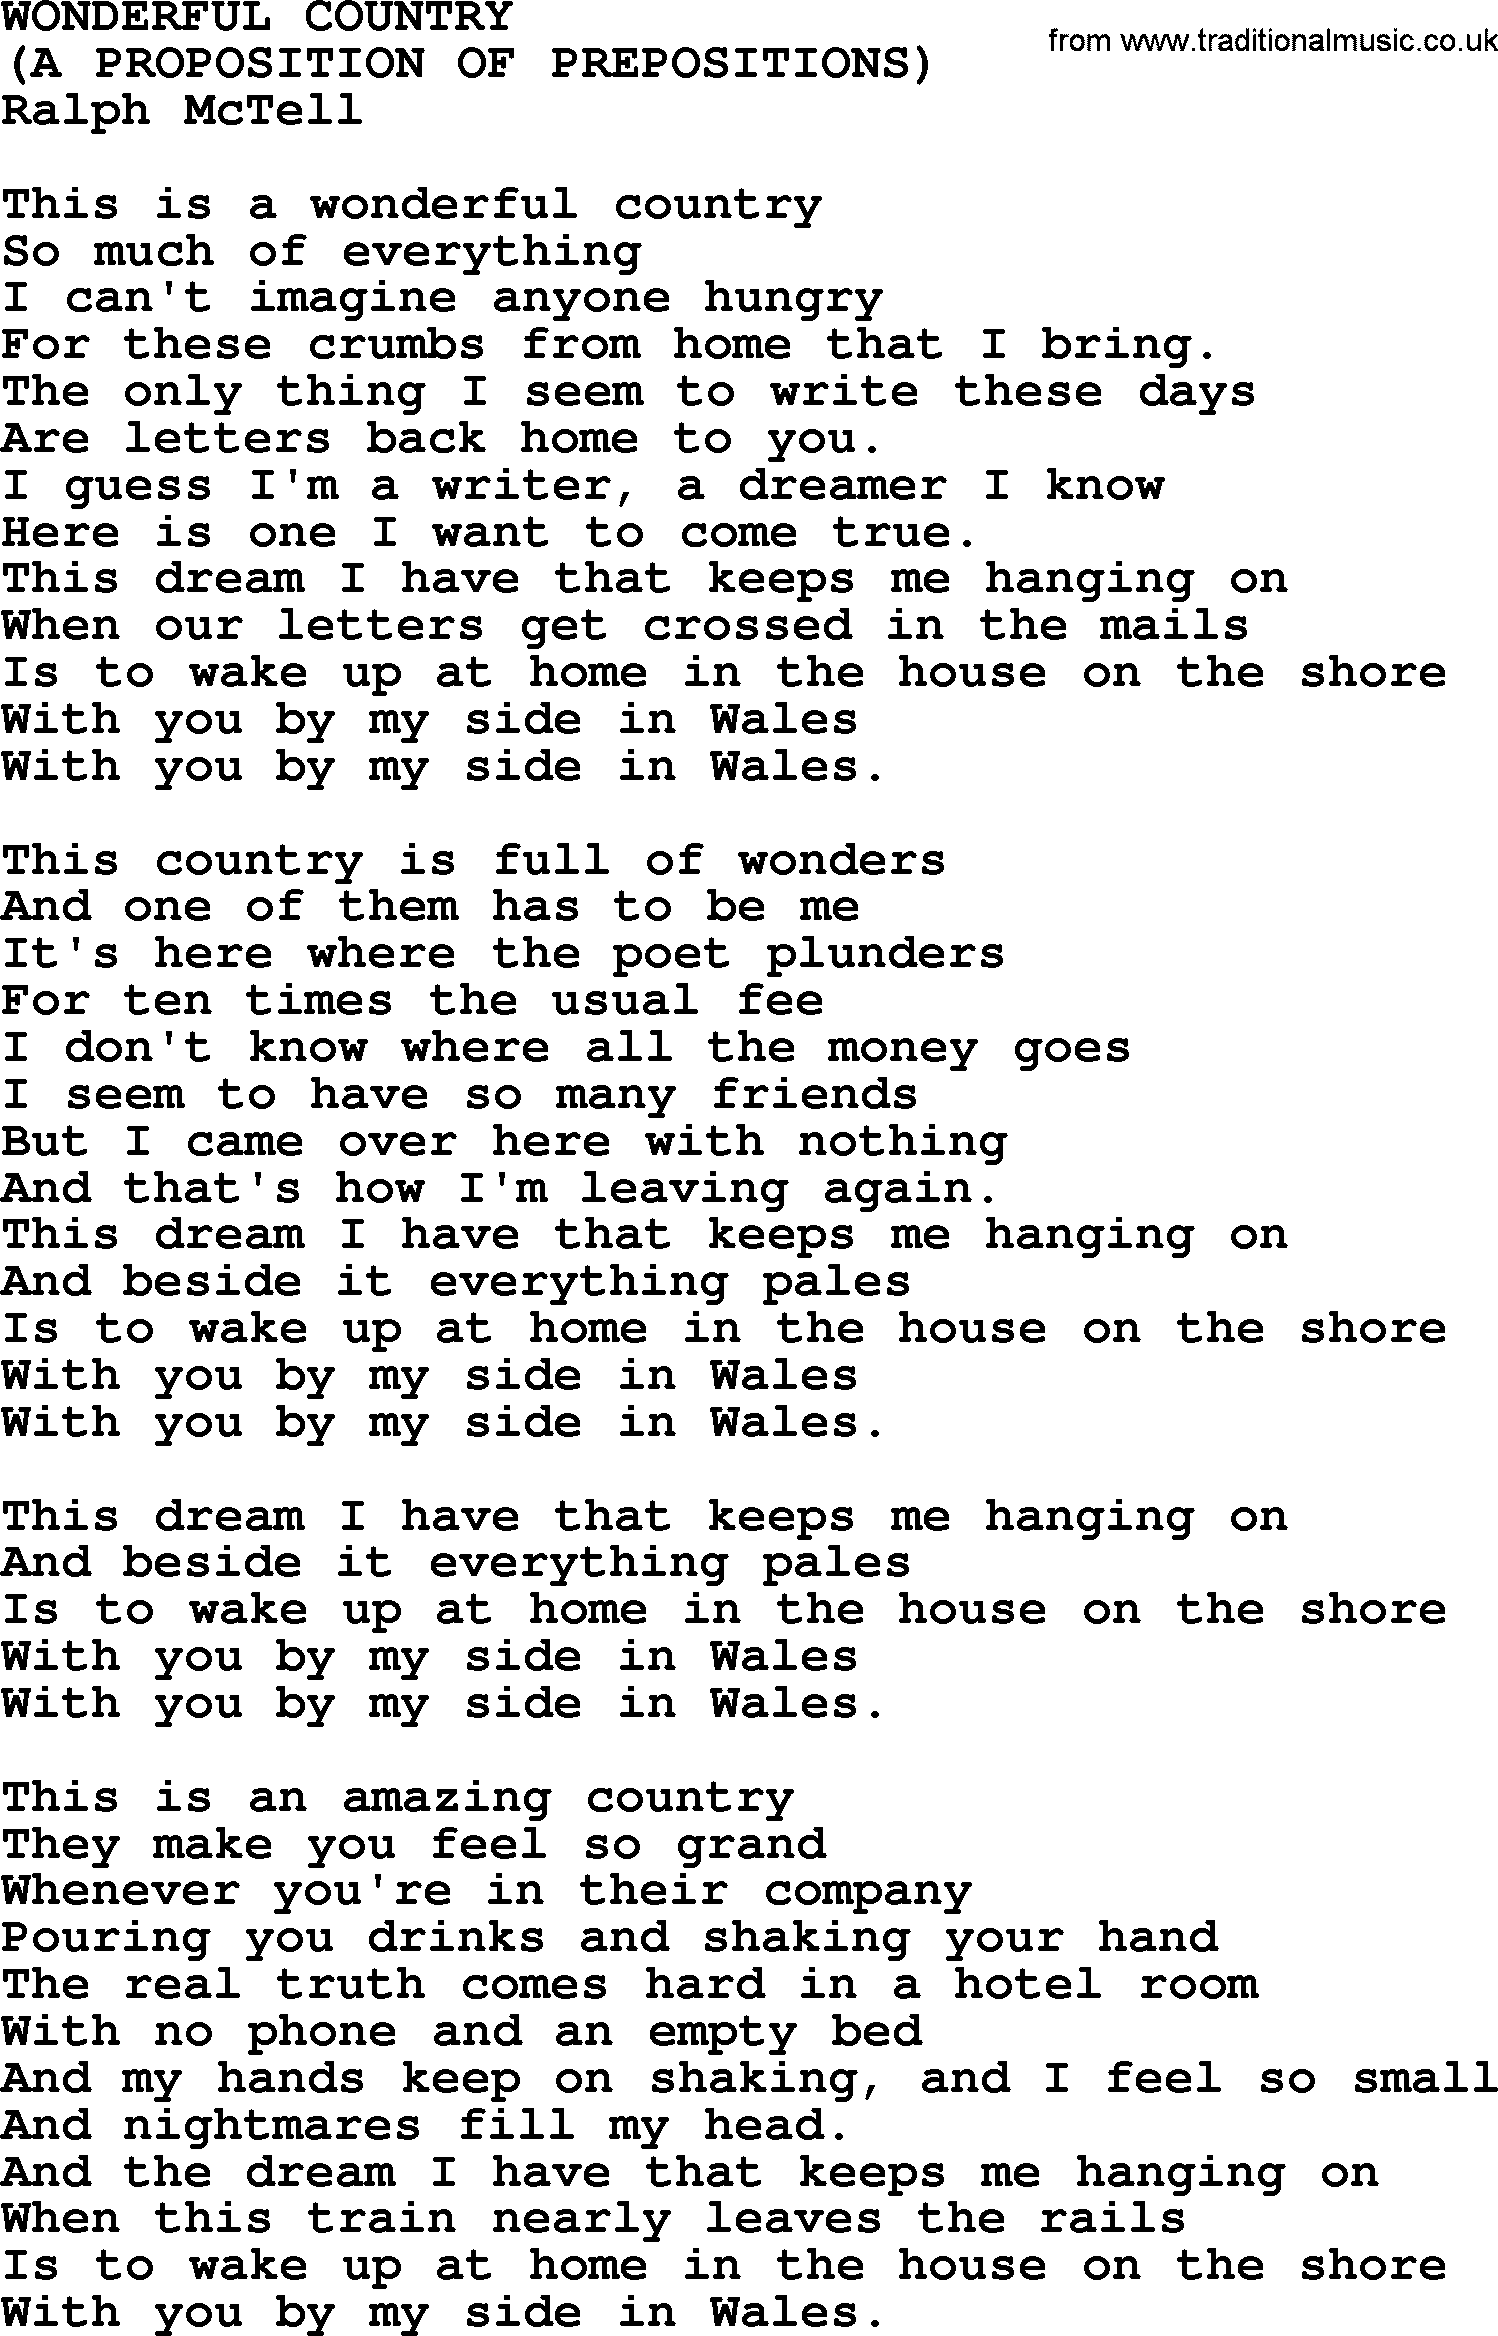 Country song titles